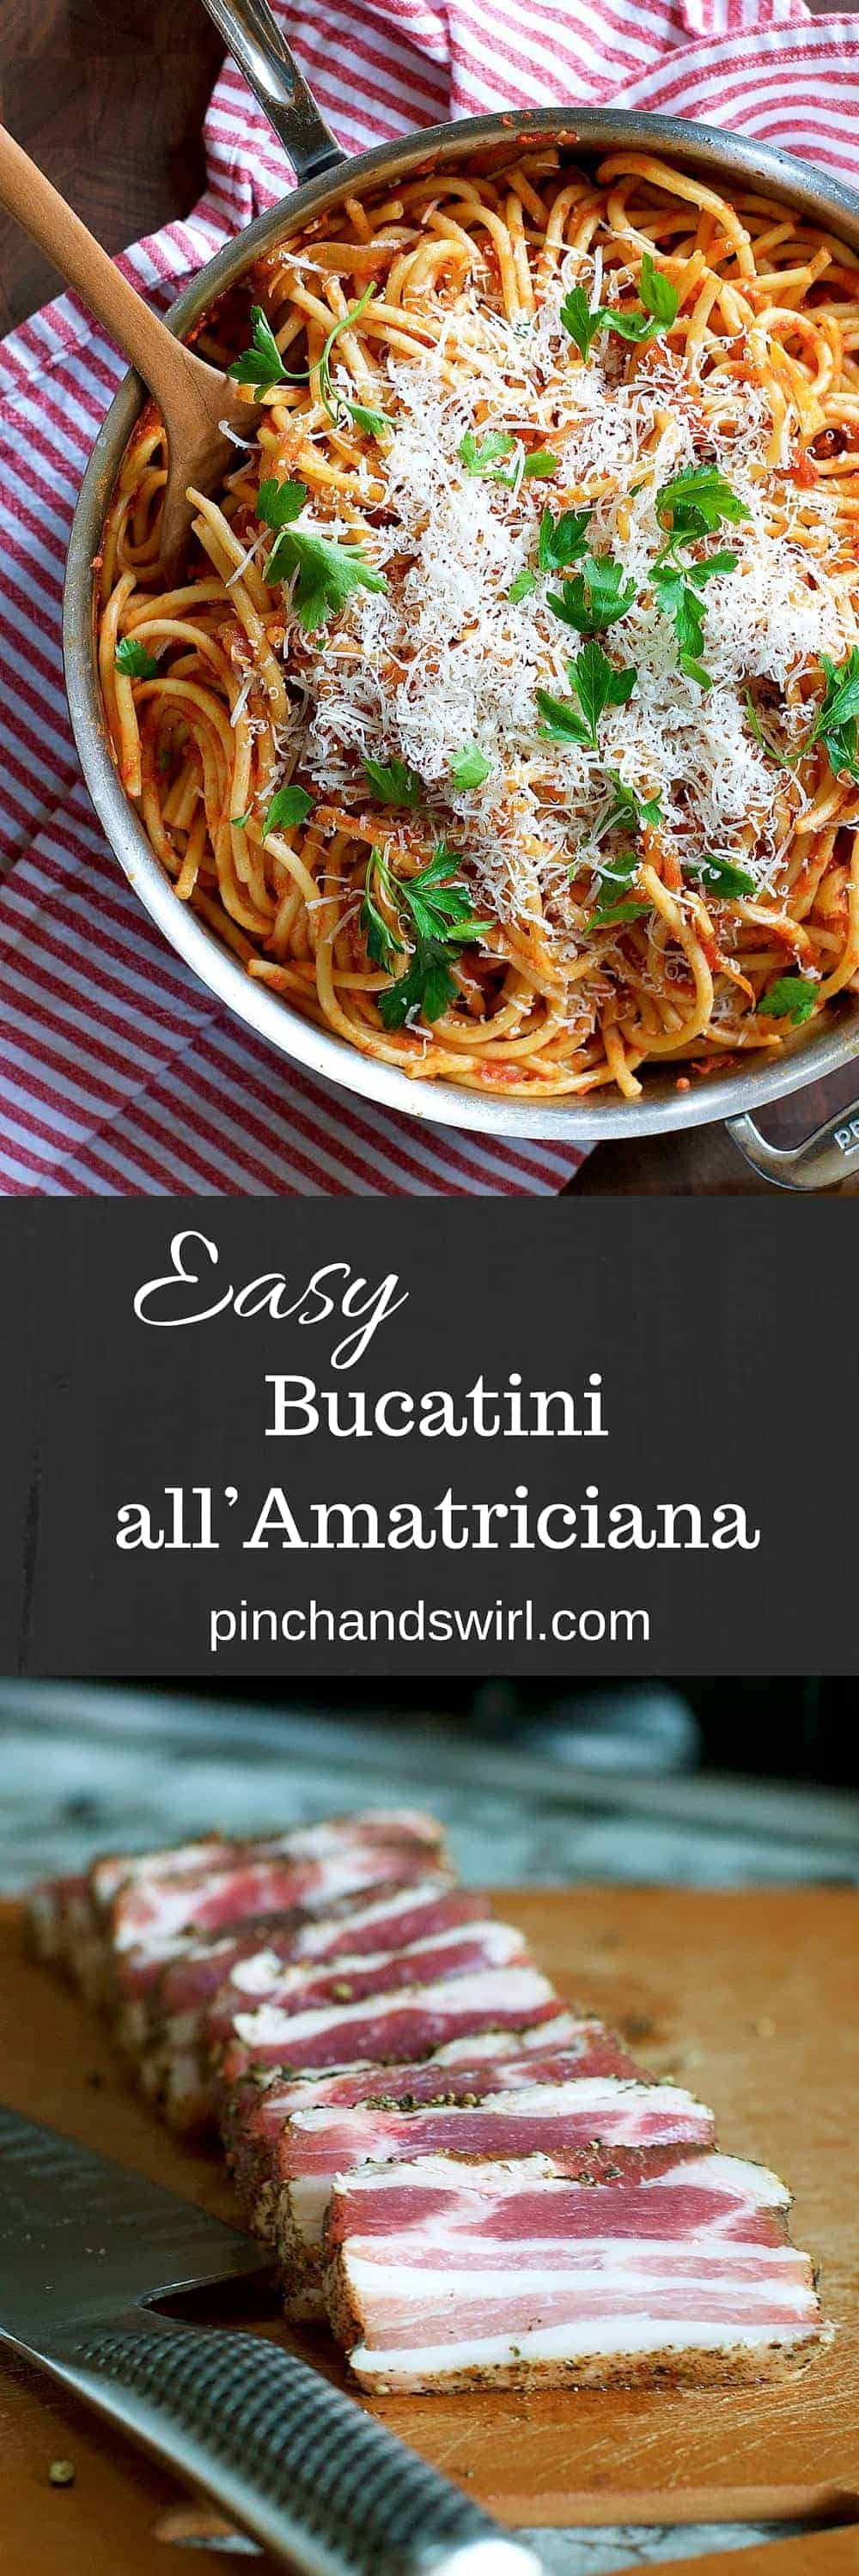 Make classic Bucatini all'Amatriciana with this simple recipe and you'll have dinner on the table in less than half an hour! A simple combination of tender bucatini noodles, spicy tomato sauce, pancetta and cheese, it's likely to become one of your favorite busy day meals! #recipe #bacon #easyrecipe #ItalianRecipes #Pasta